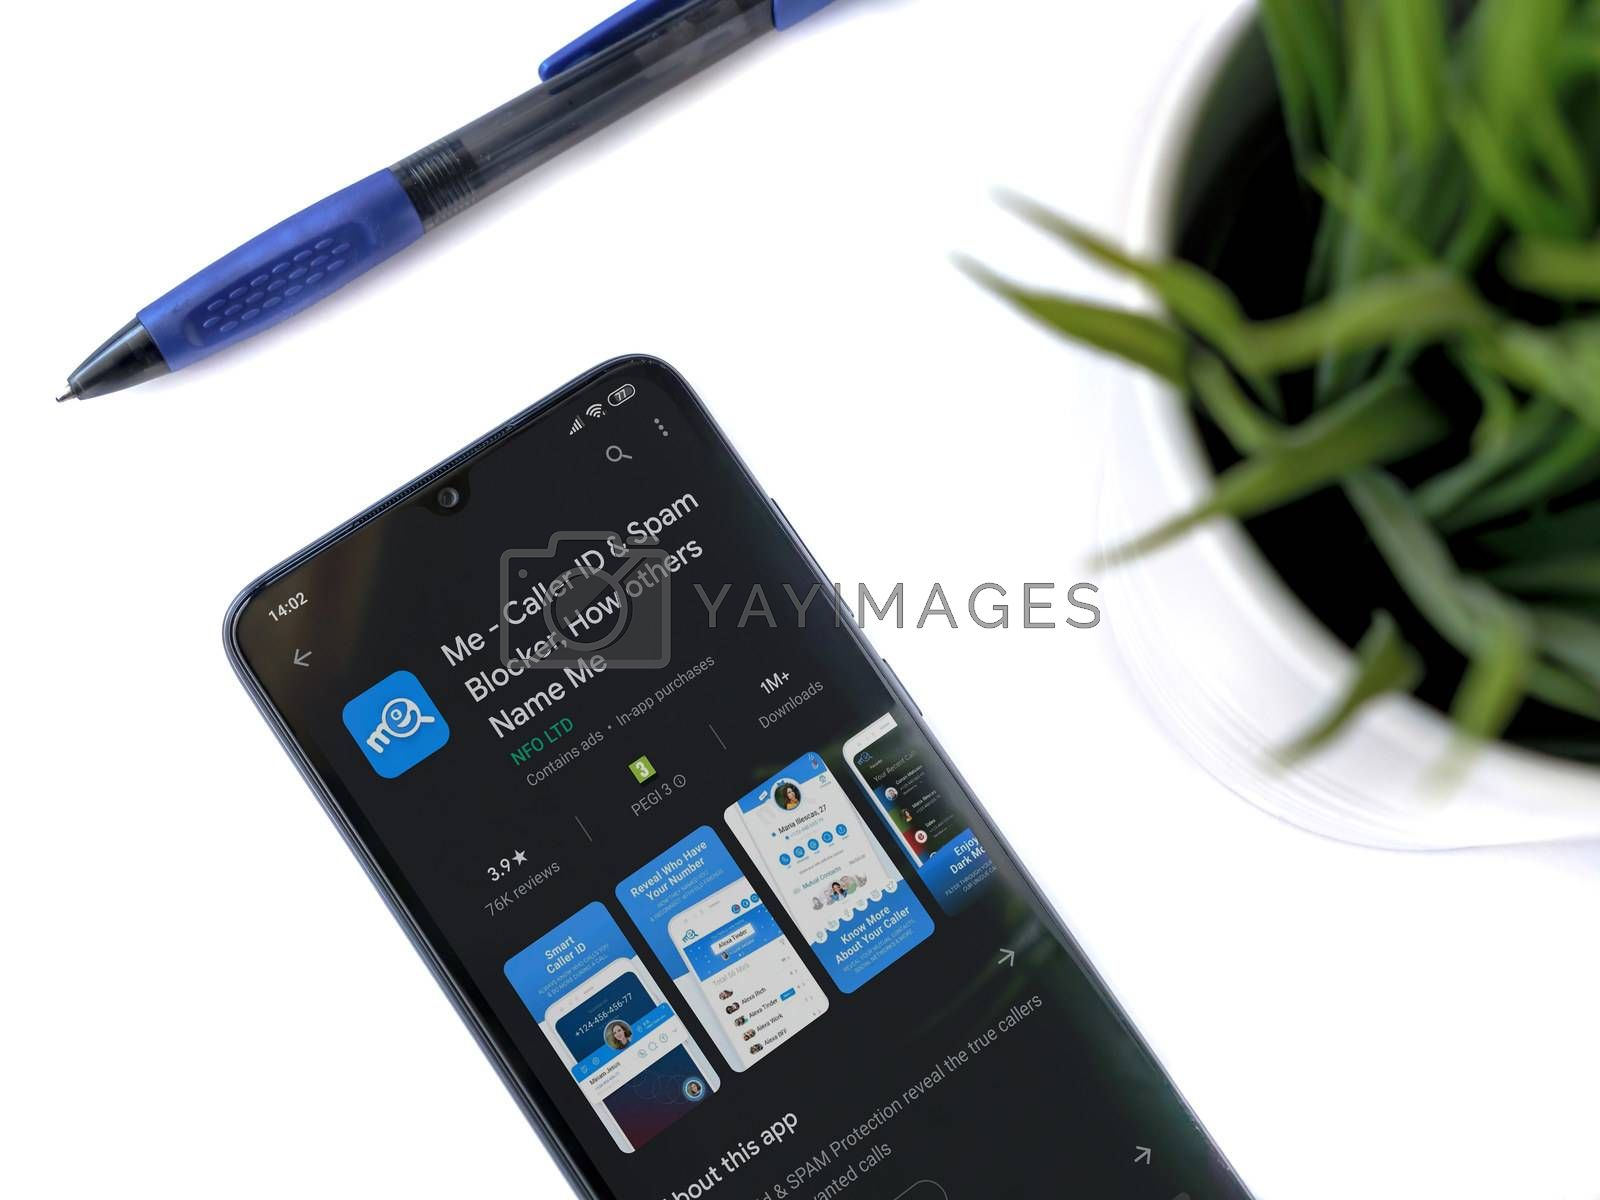 Lod, Israel - July 8, 2020: Modern minimalist office workspace with black mobile smartphone with LiveU app play store page on white background. Top view flat lay with copy space.